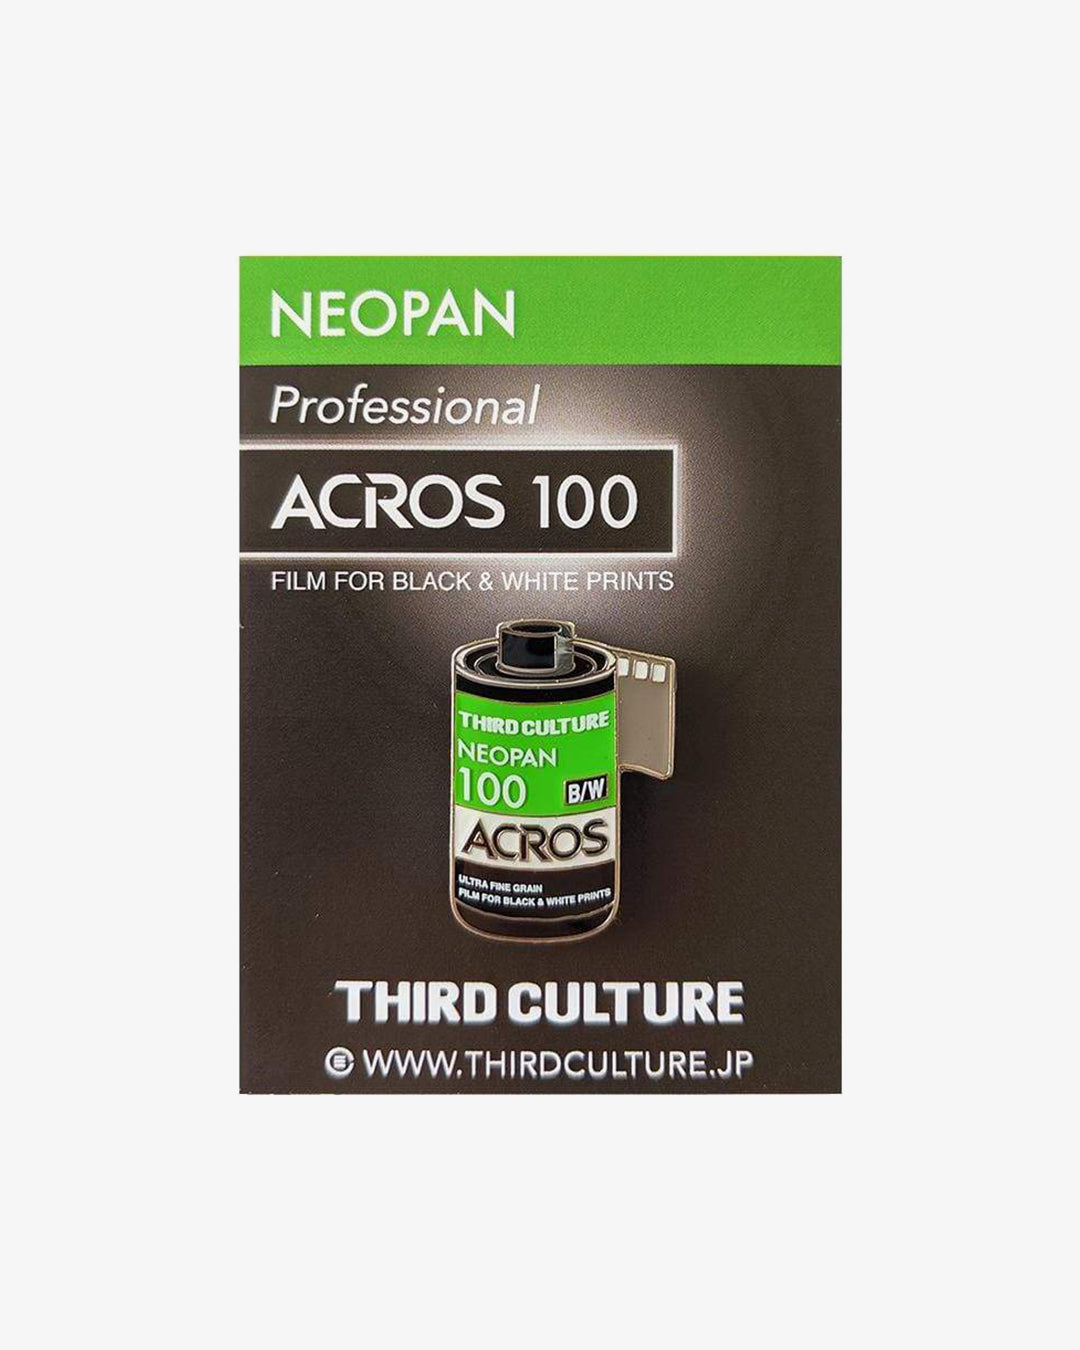 Acros Neopan 100 35mm Film Pin by Third Culture